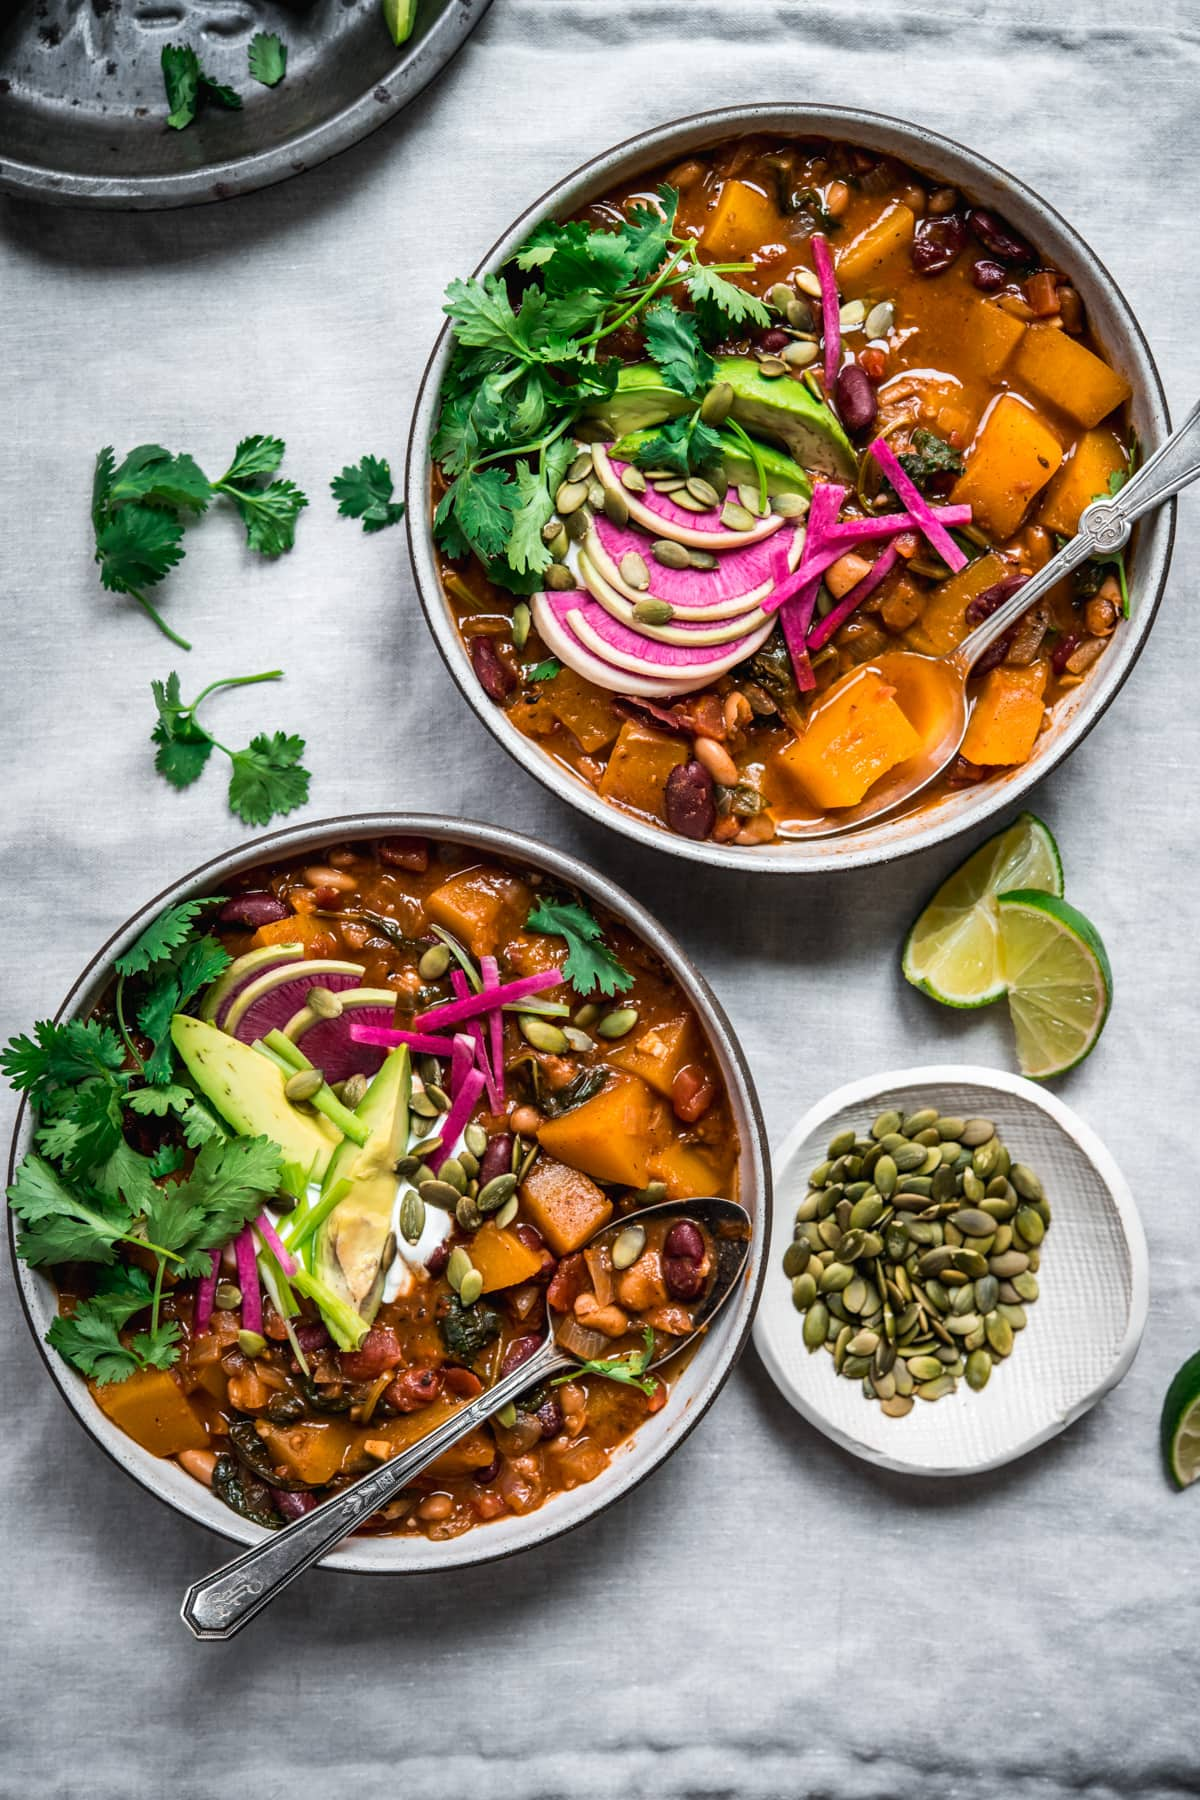 overhead view of bowls of vegan pumpkin chili topped with avocado slices, sour cream, pumpkin seeds and watermelon radish.